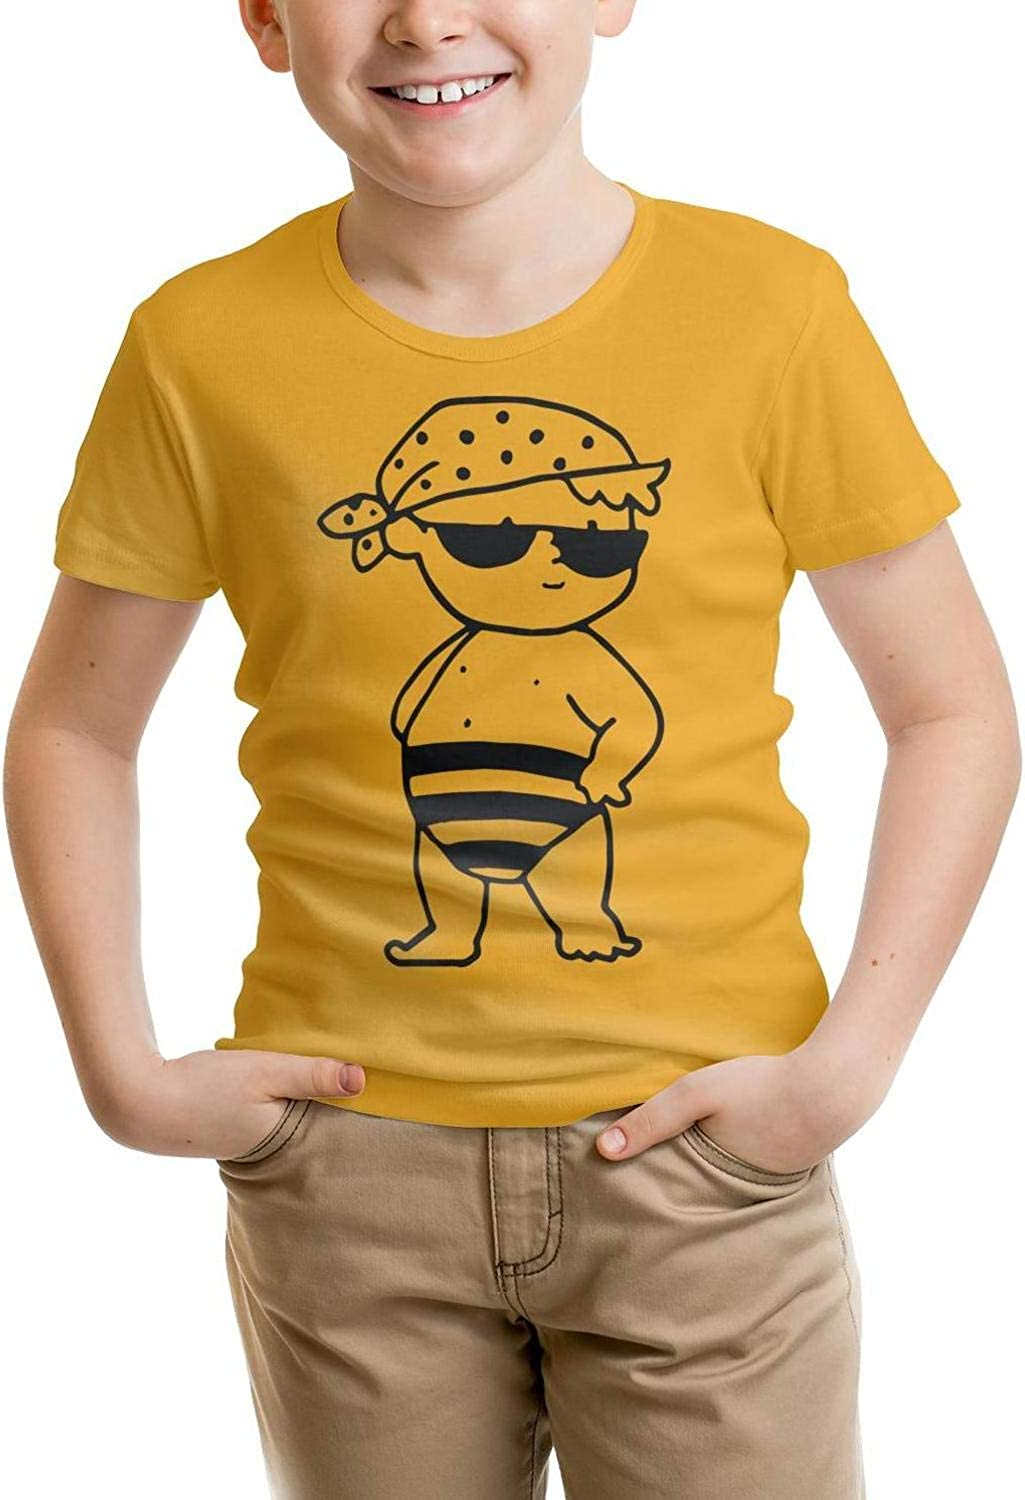 100/% Cotton Swimsuit t Shirt Slim-Fit for Young Shirts Cute Pattern